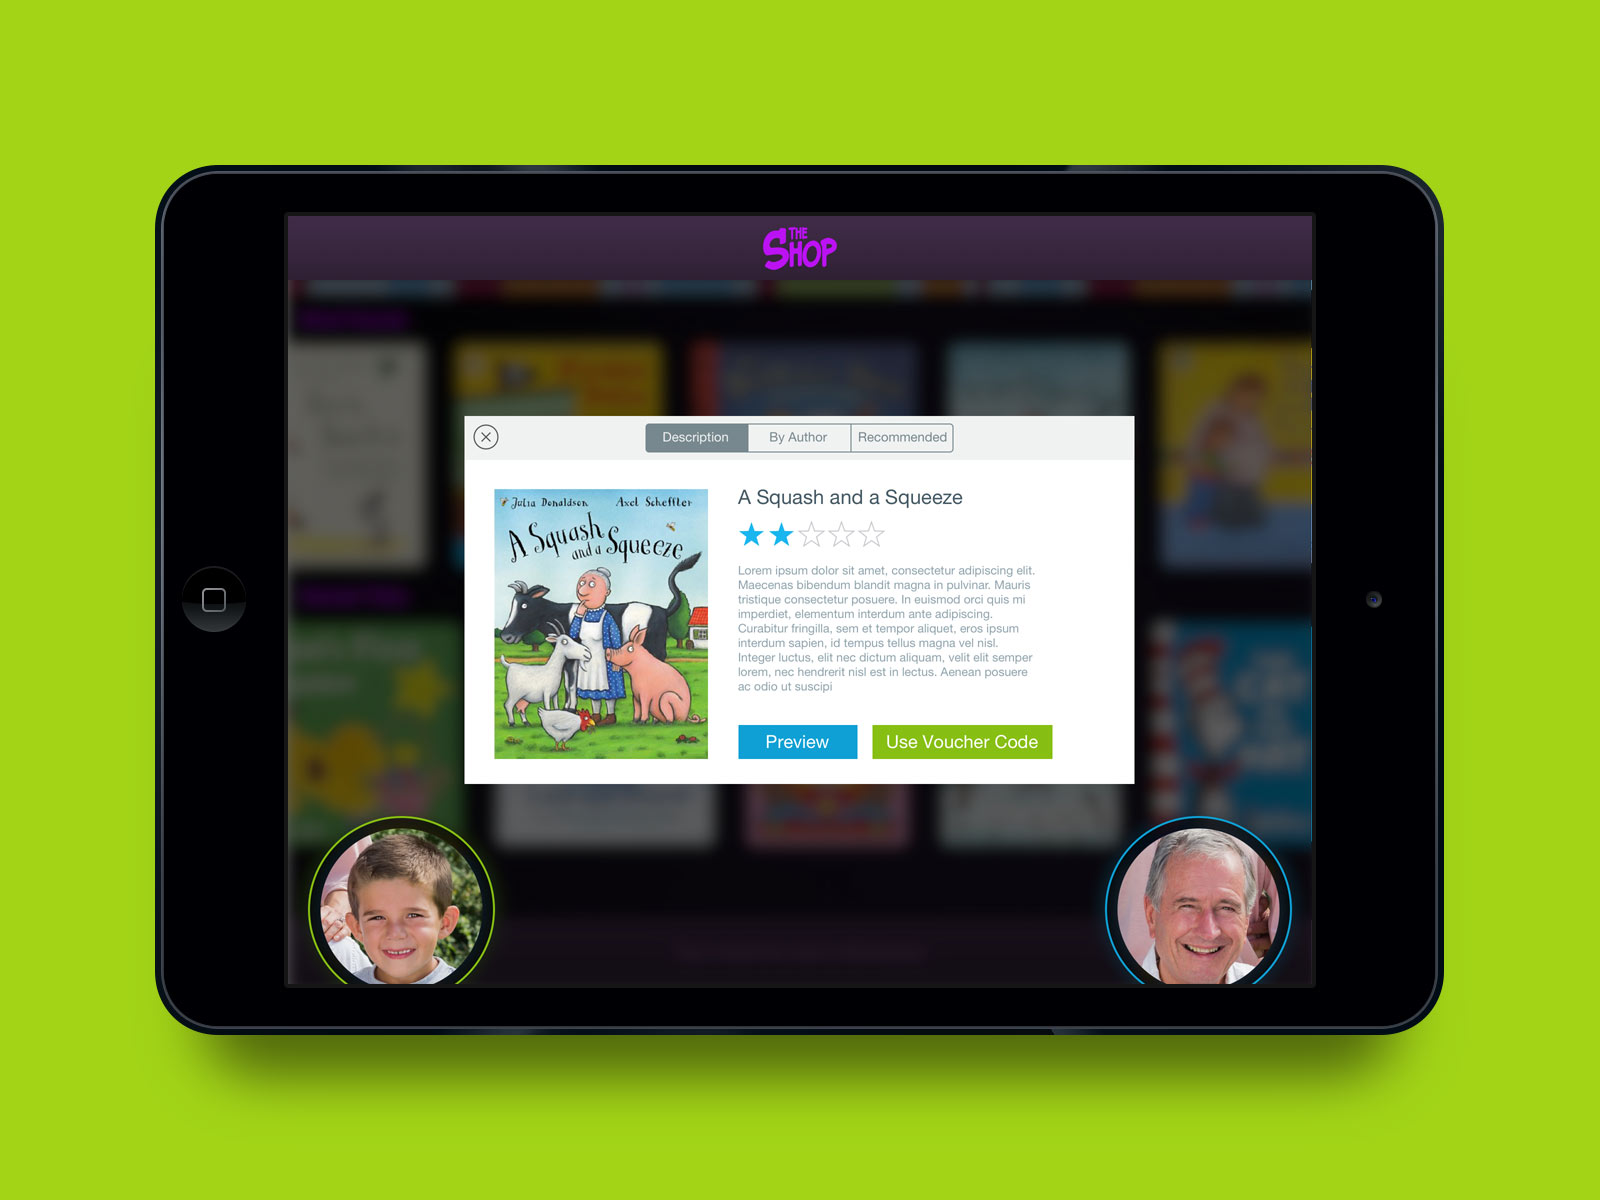 Far Far Away app in iPad. View book descriptions, purchase or download previews.Interactive book and video chat.